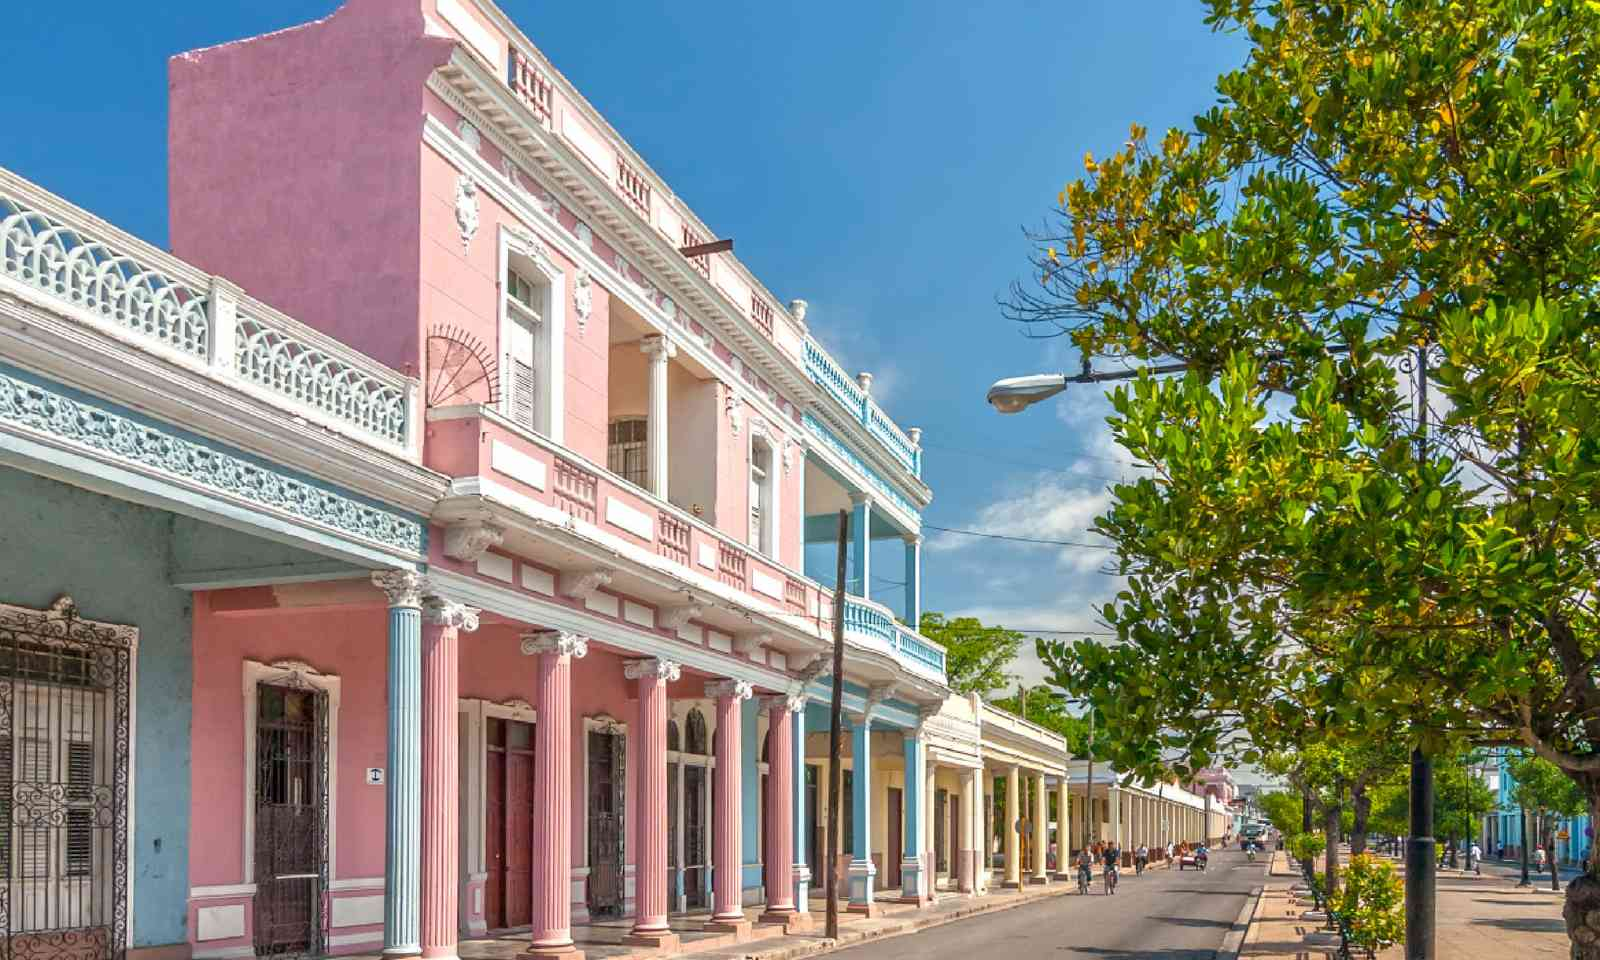 Traditional colonial style coloured buildings (Shutterstock)